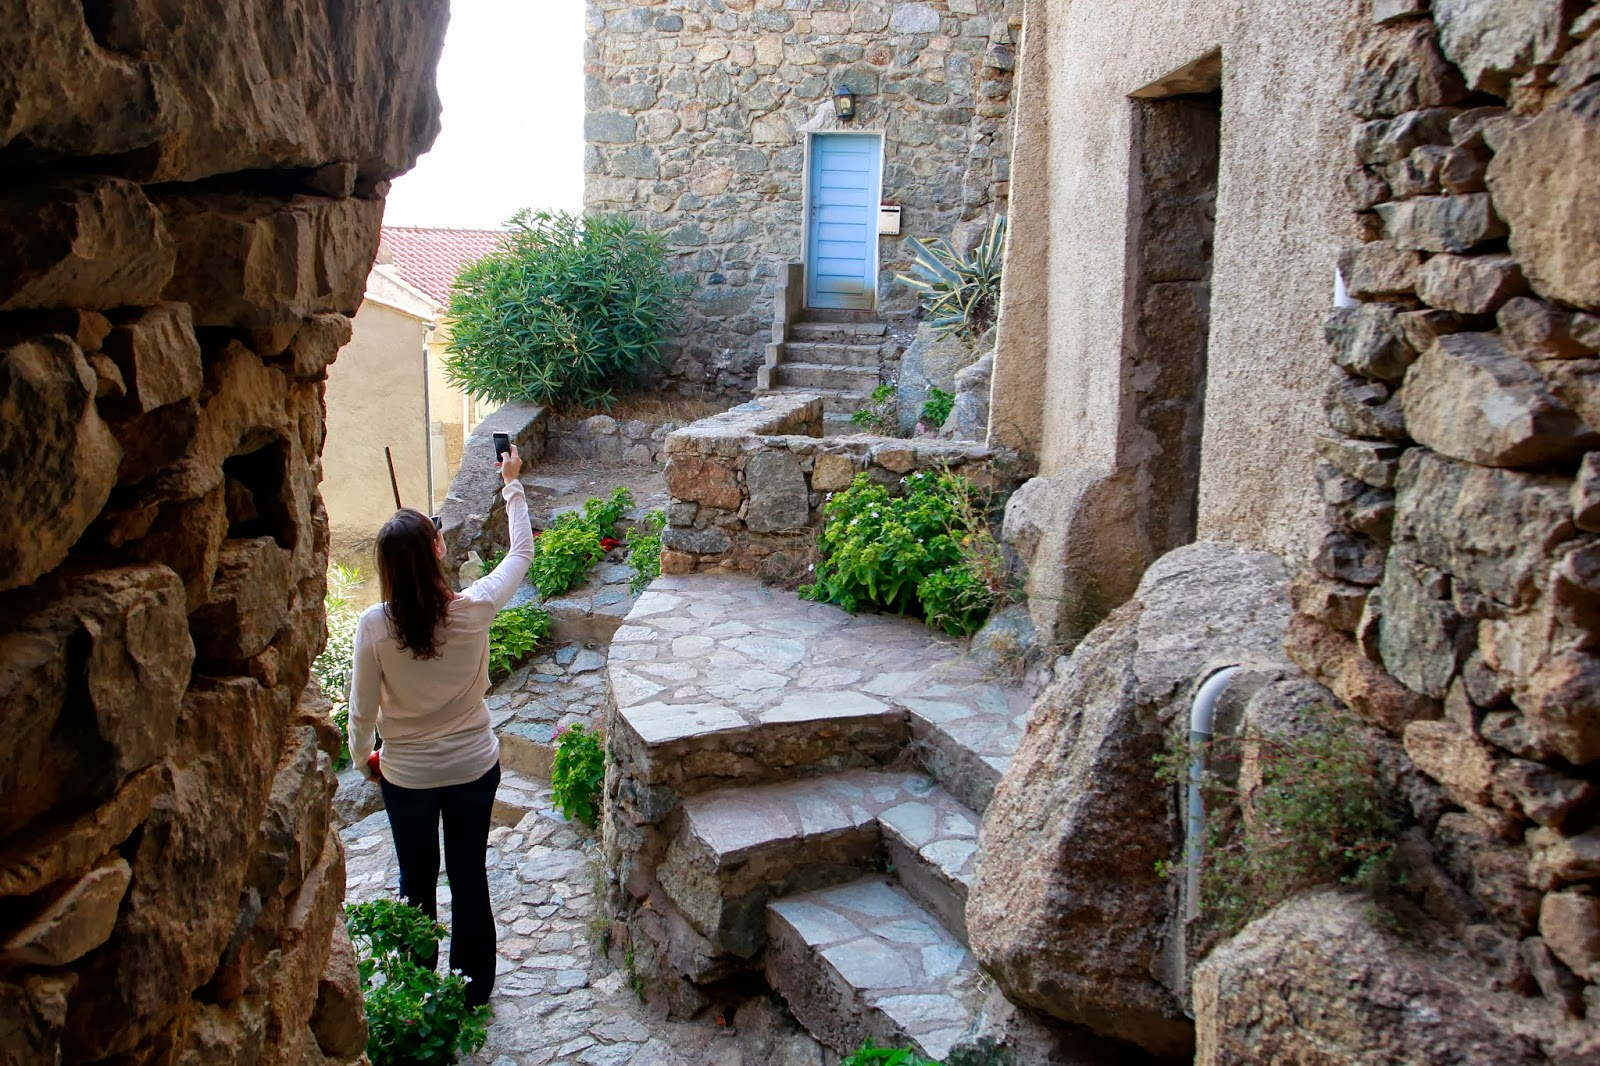 Corsica, France, Mediterranean Island, Most Beautiful Villages, News, San Antonino village, Travel, Village,